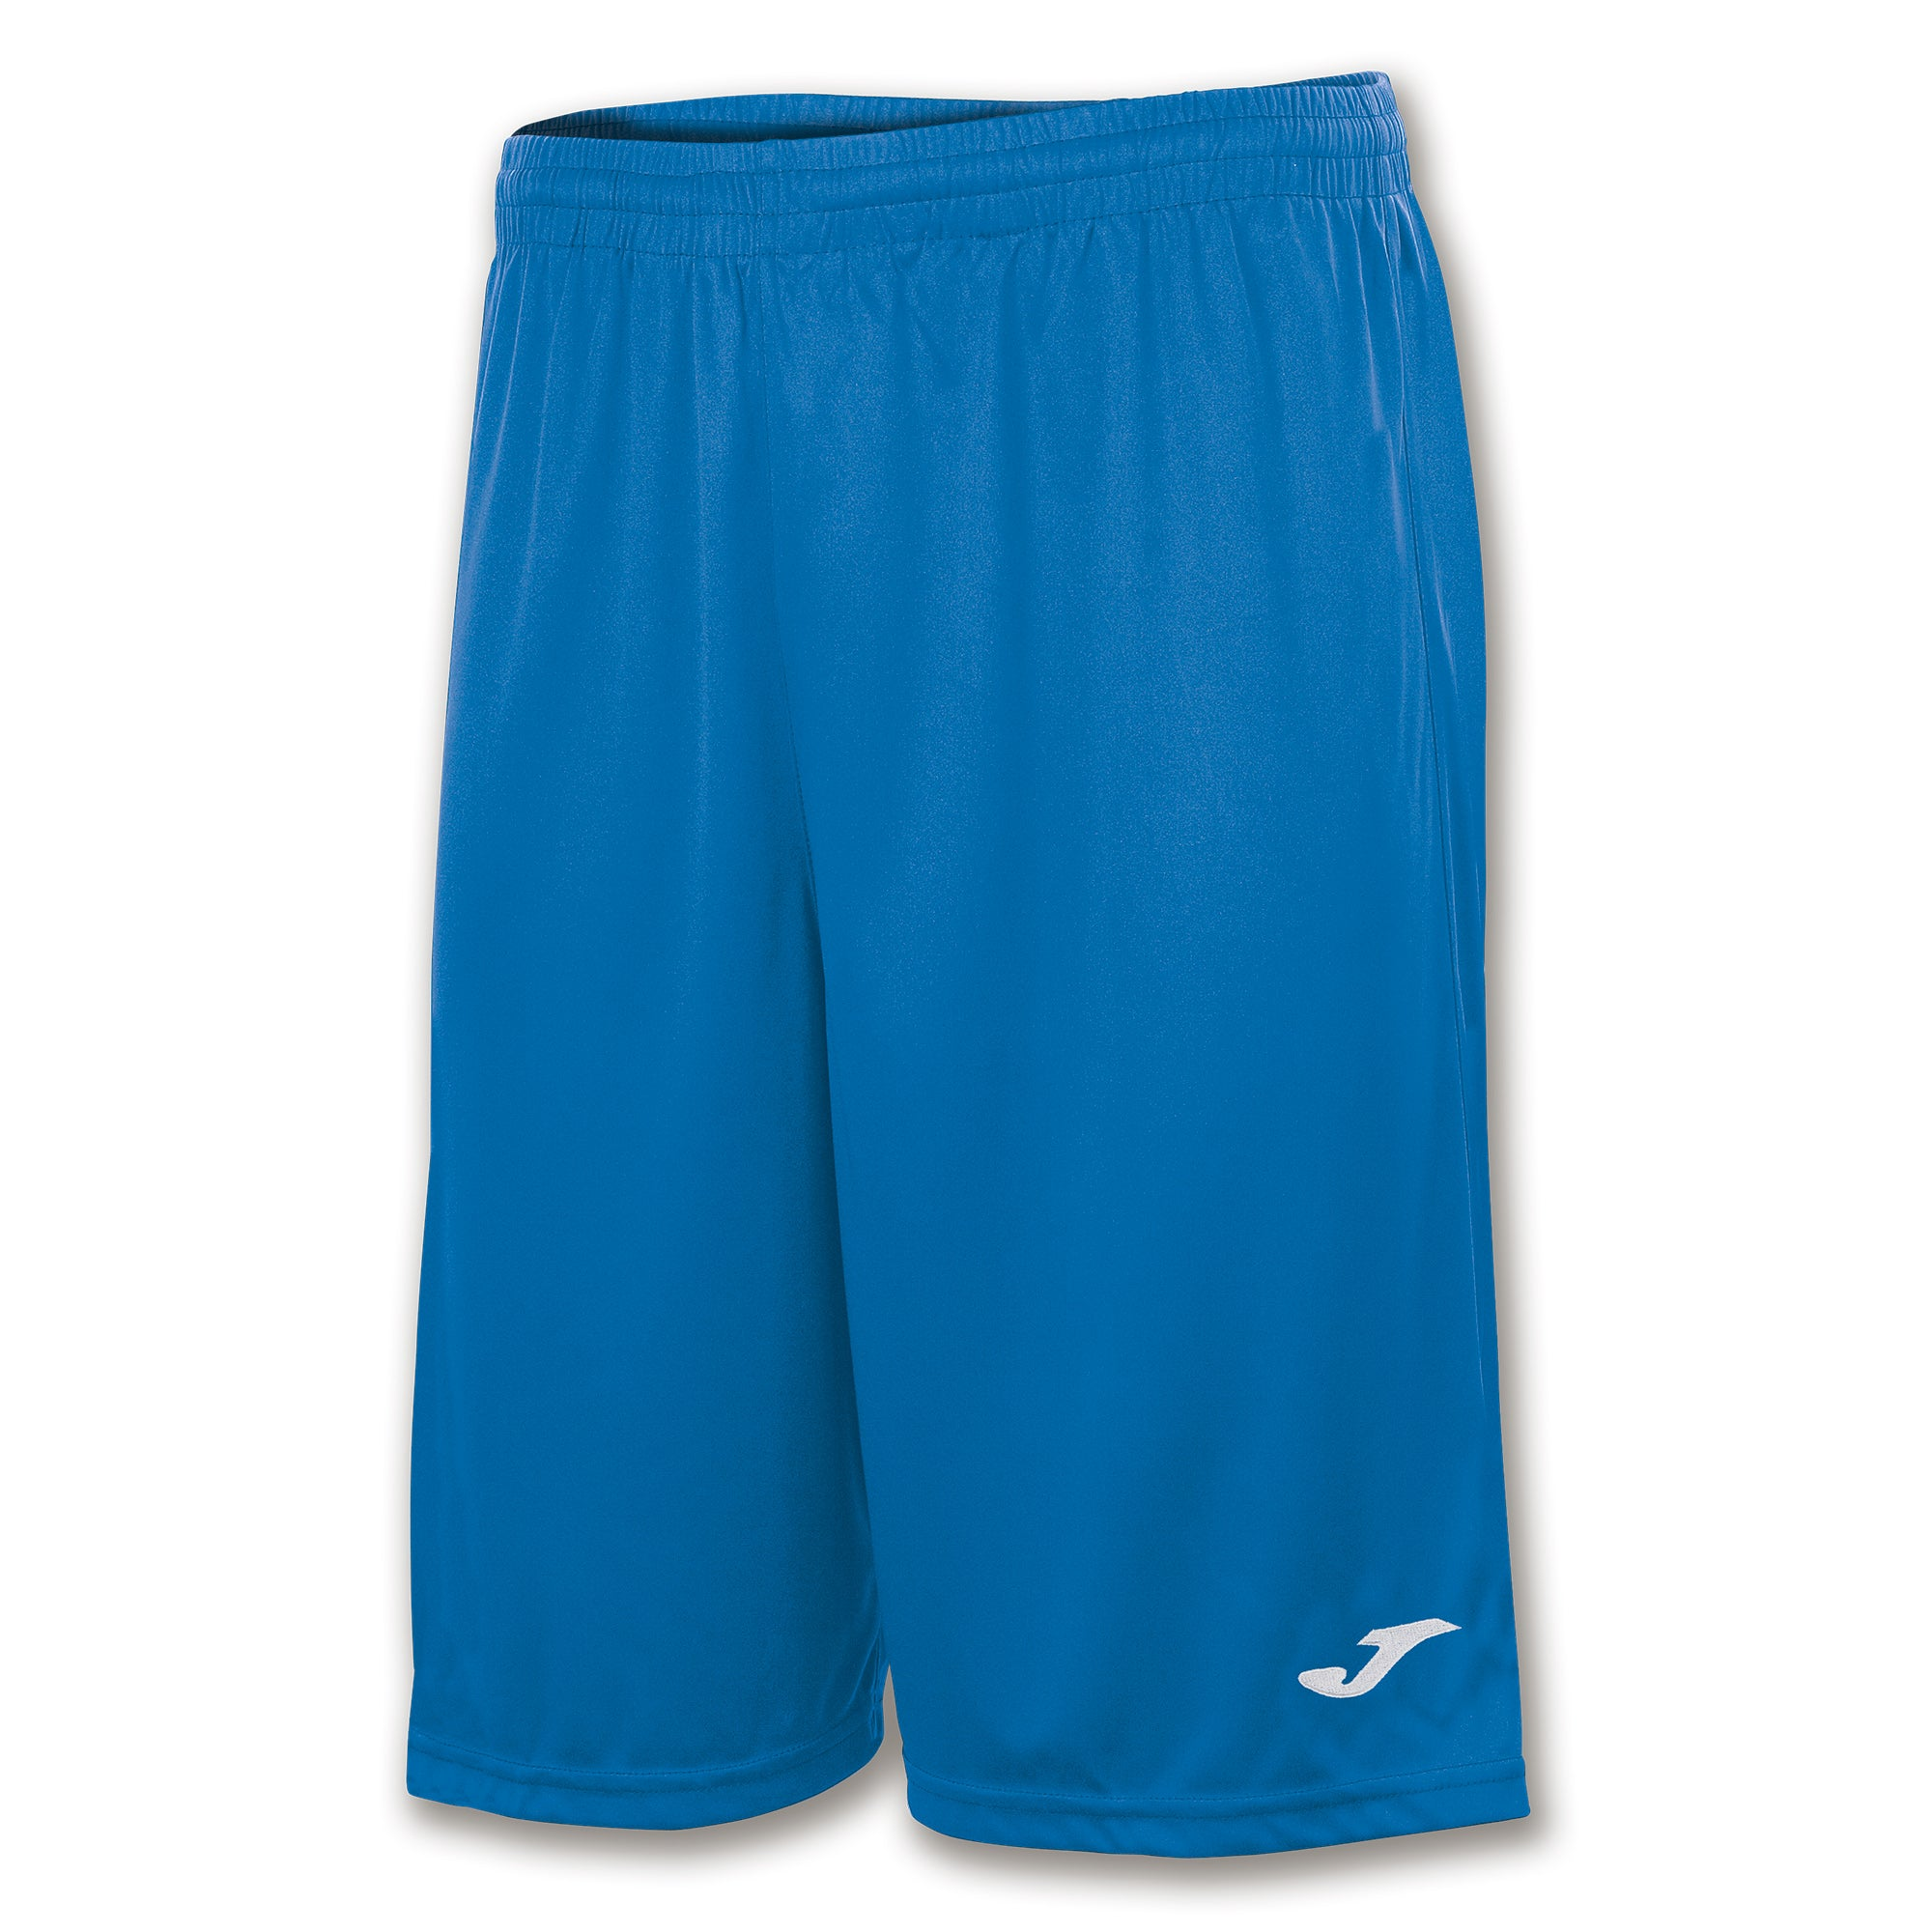 Teamwear - Joma Nobel Long Shorts - Royal Blue - JO-101648-700